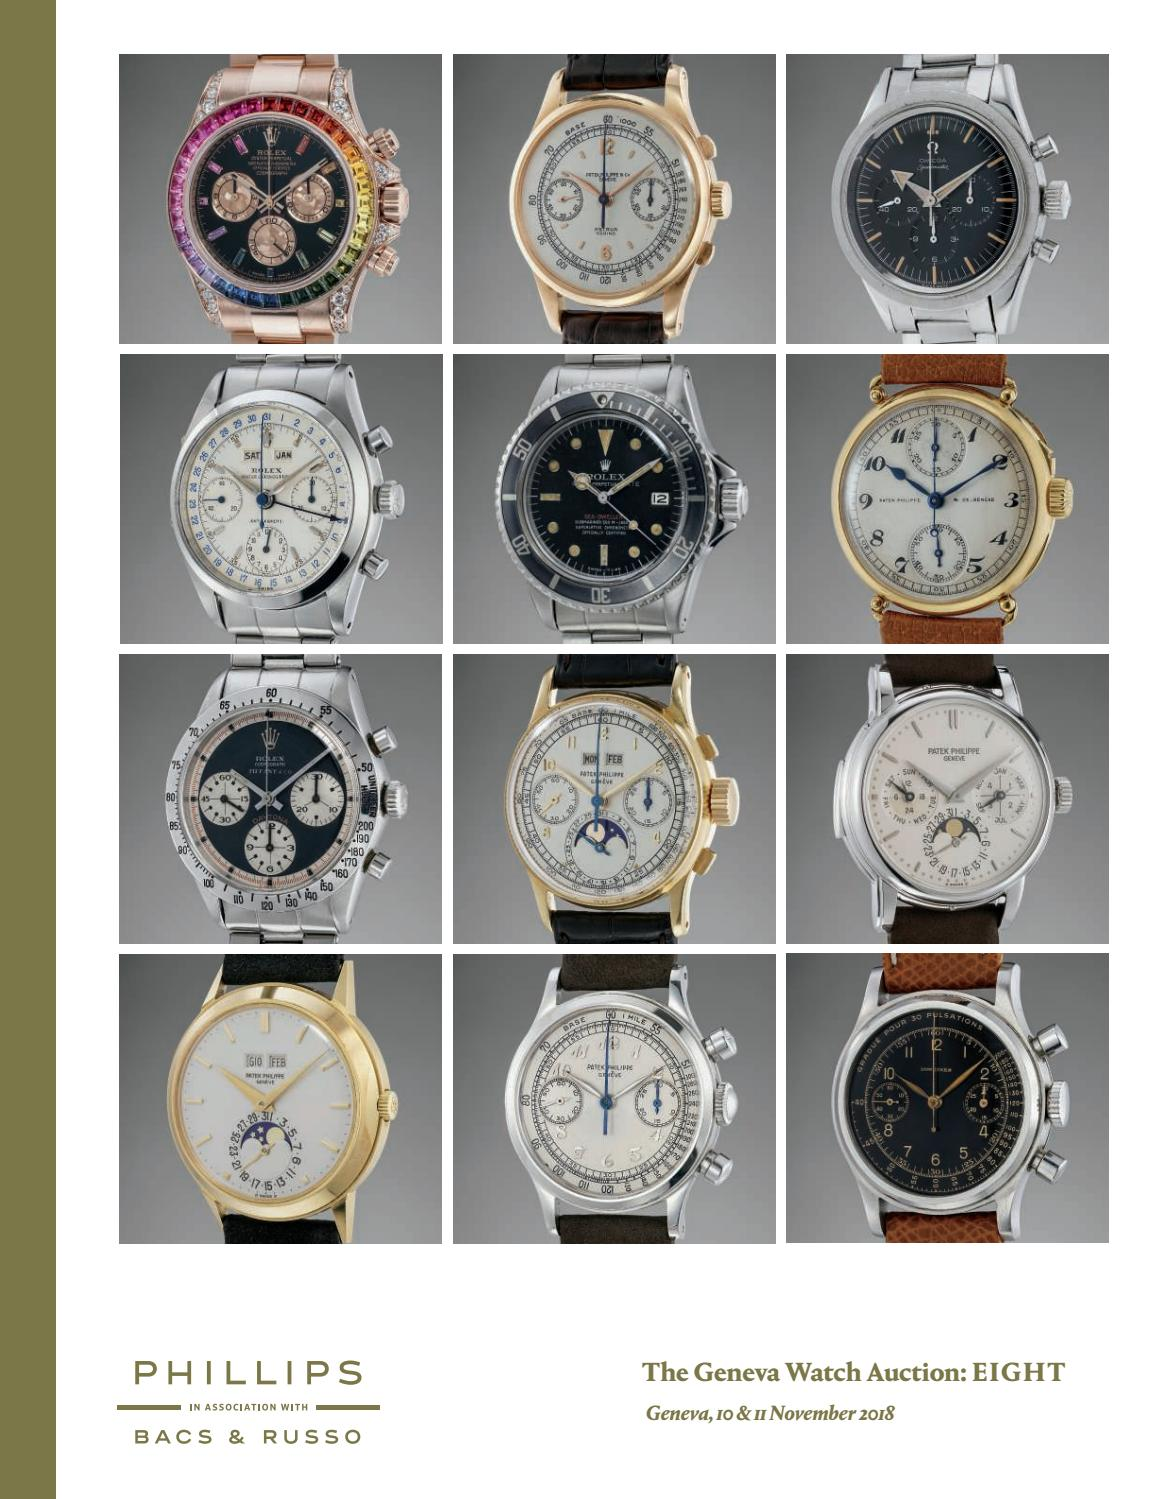 4344ad0fd04f The Geneva Watch Auction  EIGHT  Catalogue  by PHILLIPS - issuu